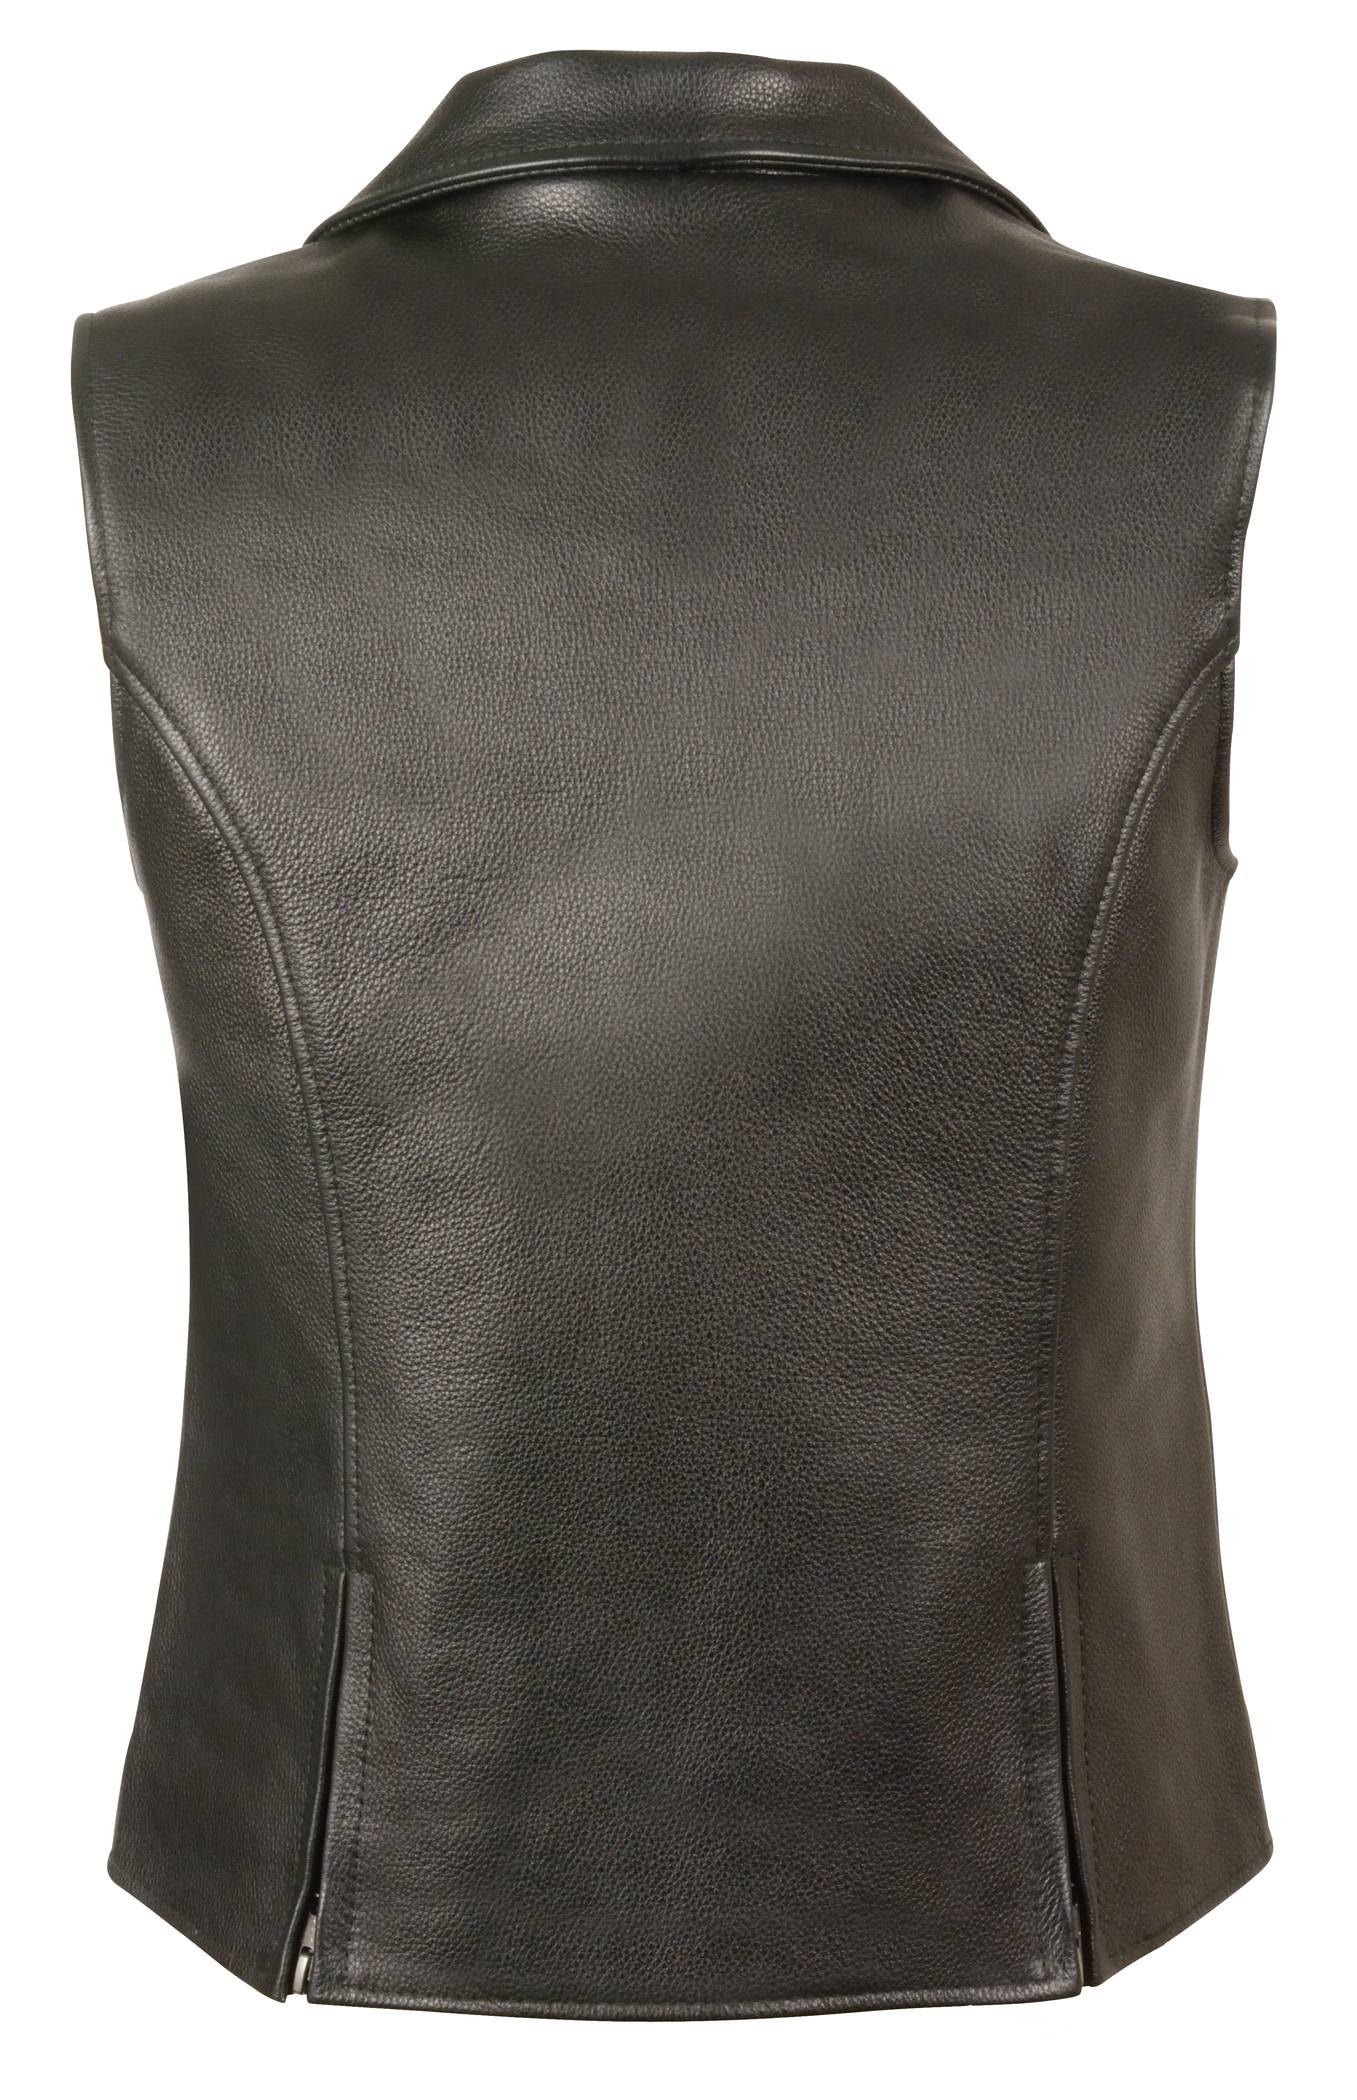 Milwaukee Leather Mens Zipper Front Replica Bullet Proof Style Leather Vest Black, Size 38